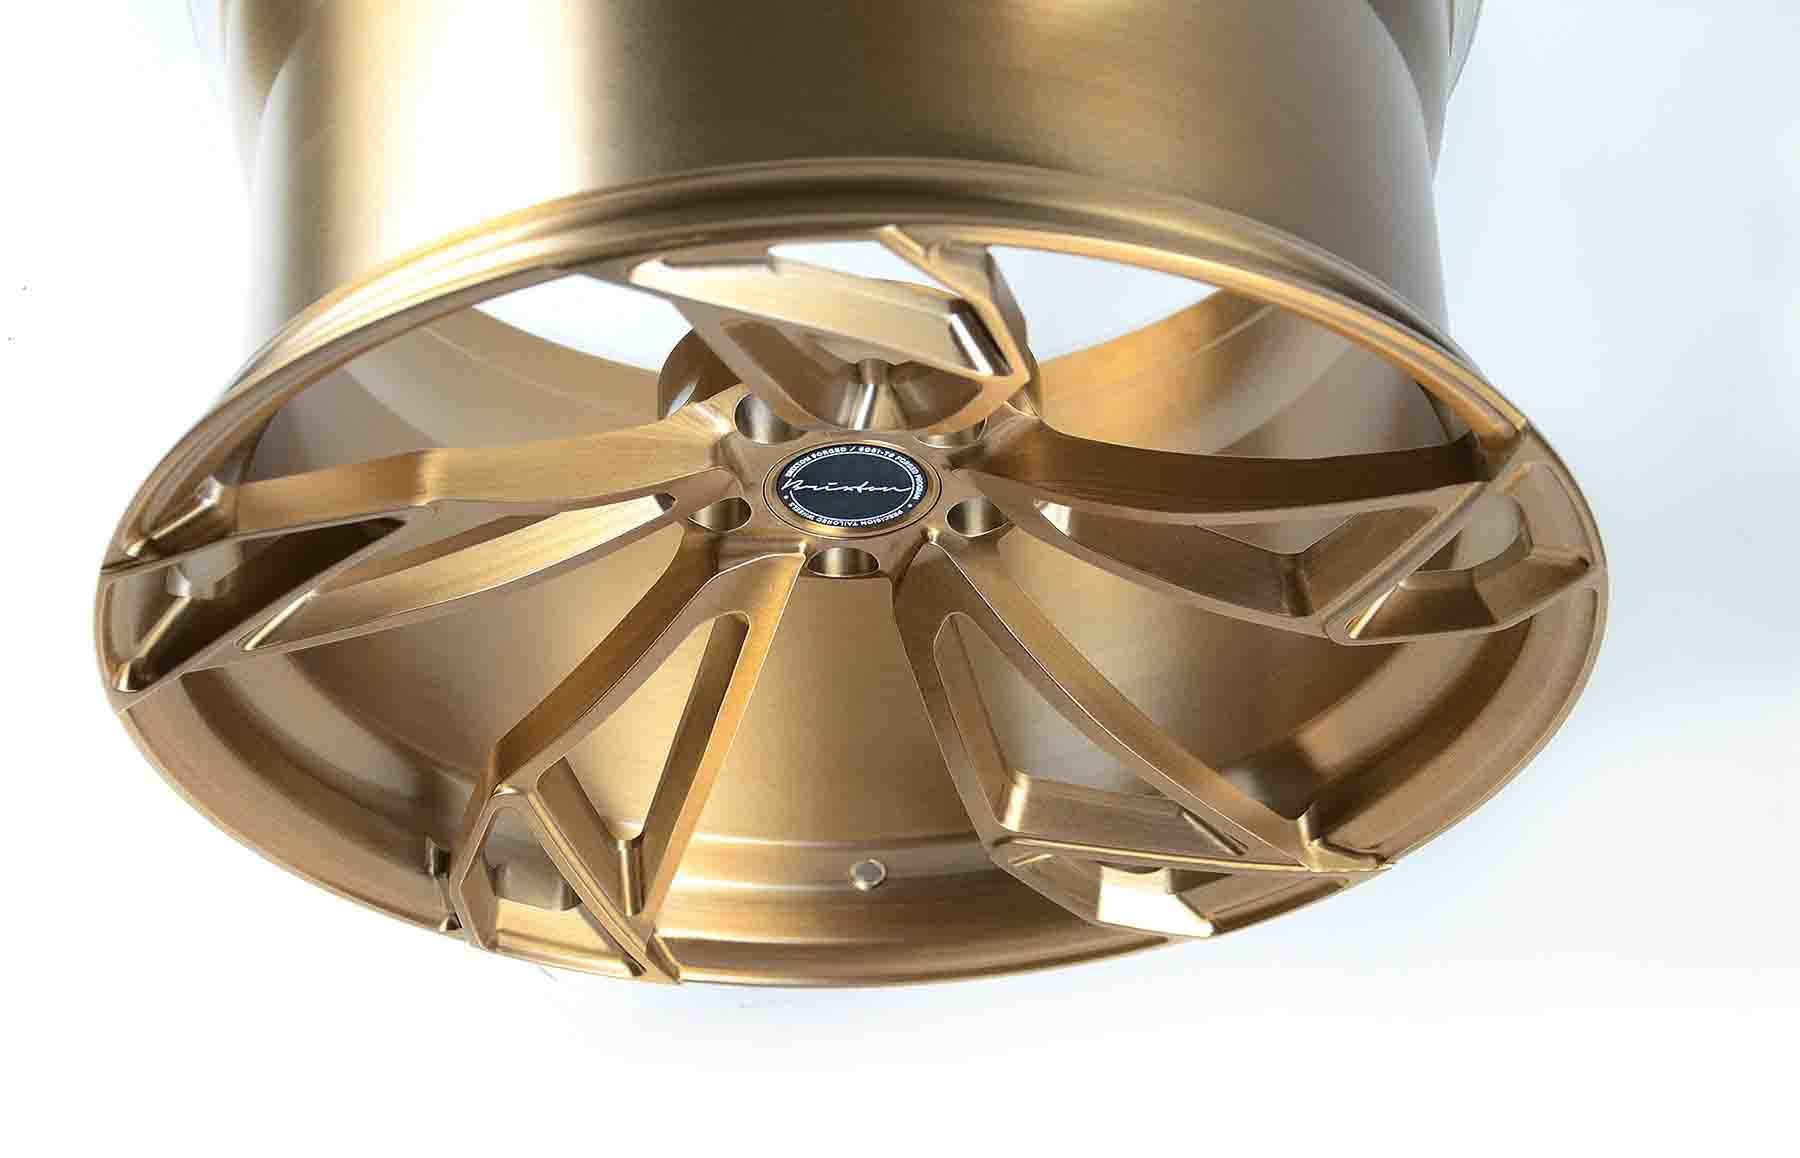 images-products-1-1920-232974208-brixton-forged-pf1-ultrasport-brushed-olympic-bronze-matte-clear.jpg